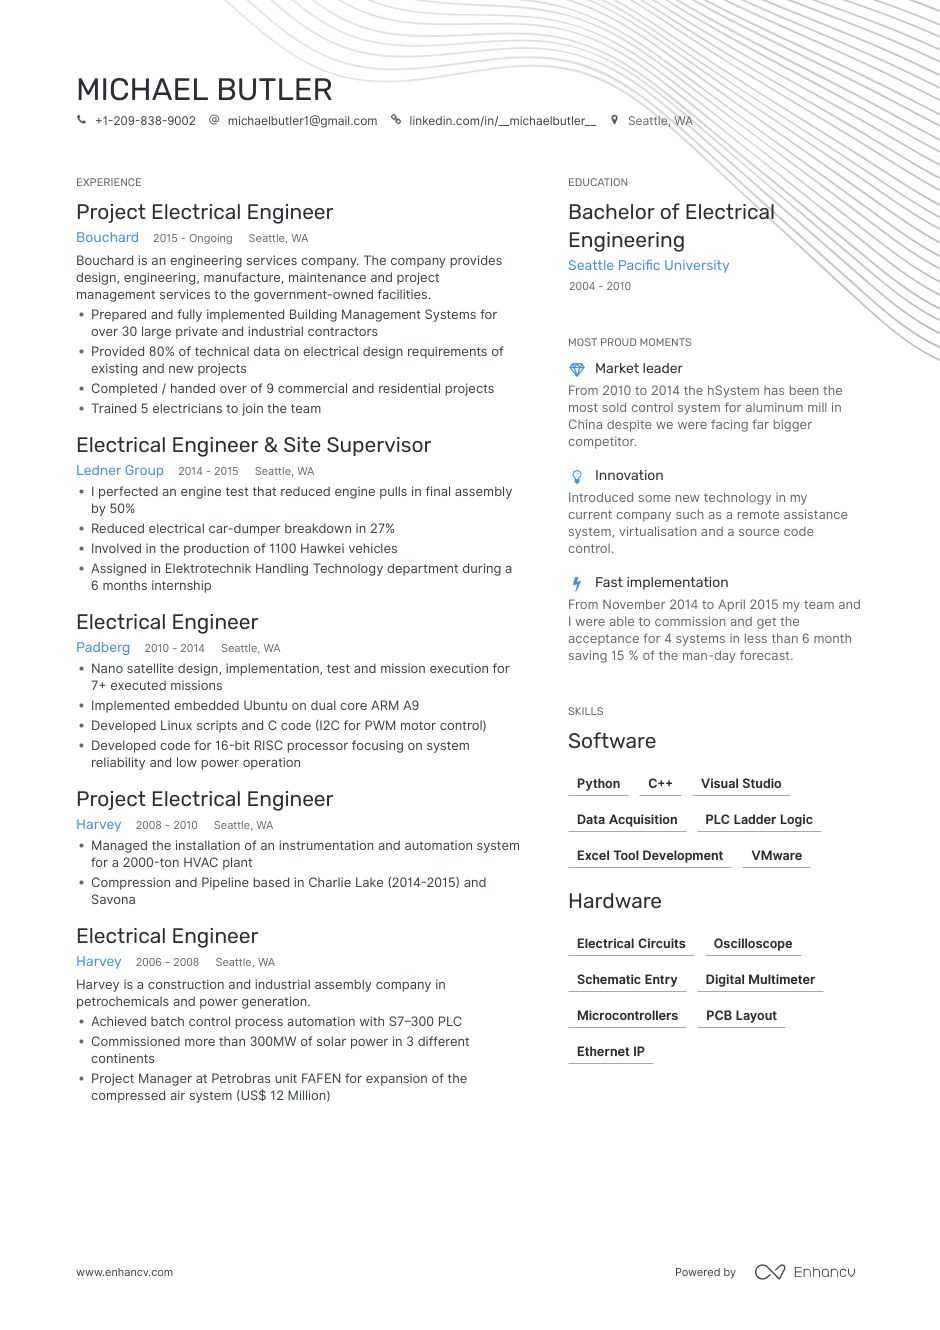 electrical engineer resume examples pro tips featured enhancv sample for experienced Resume Sample Resume For Experienced Electronics Engineer